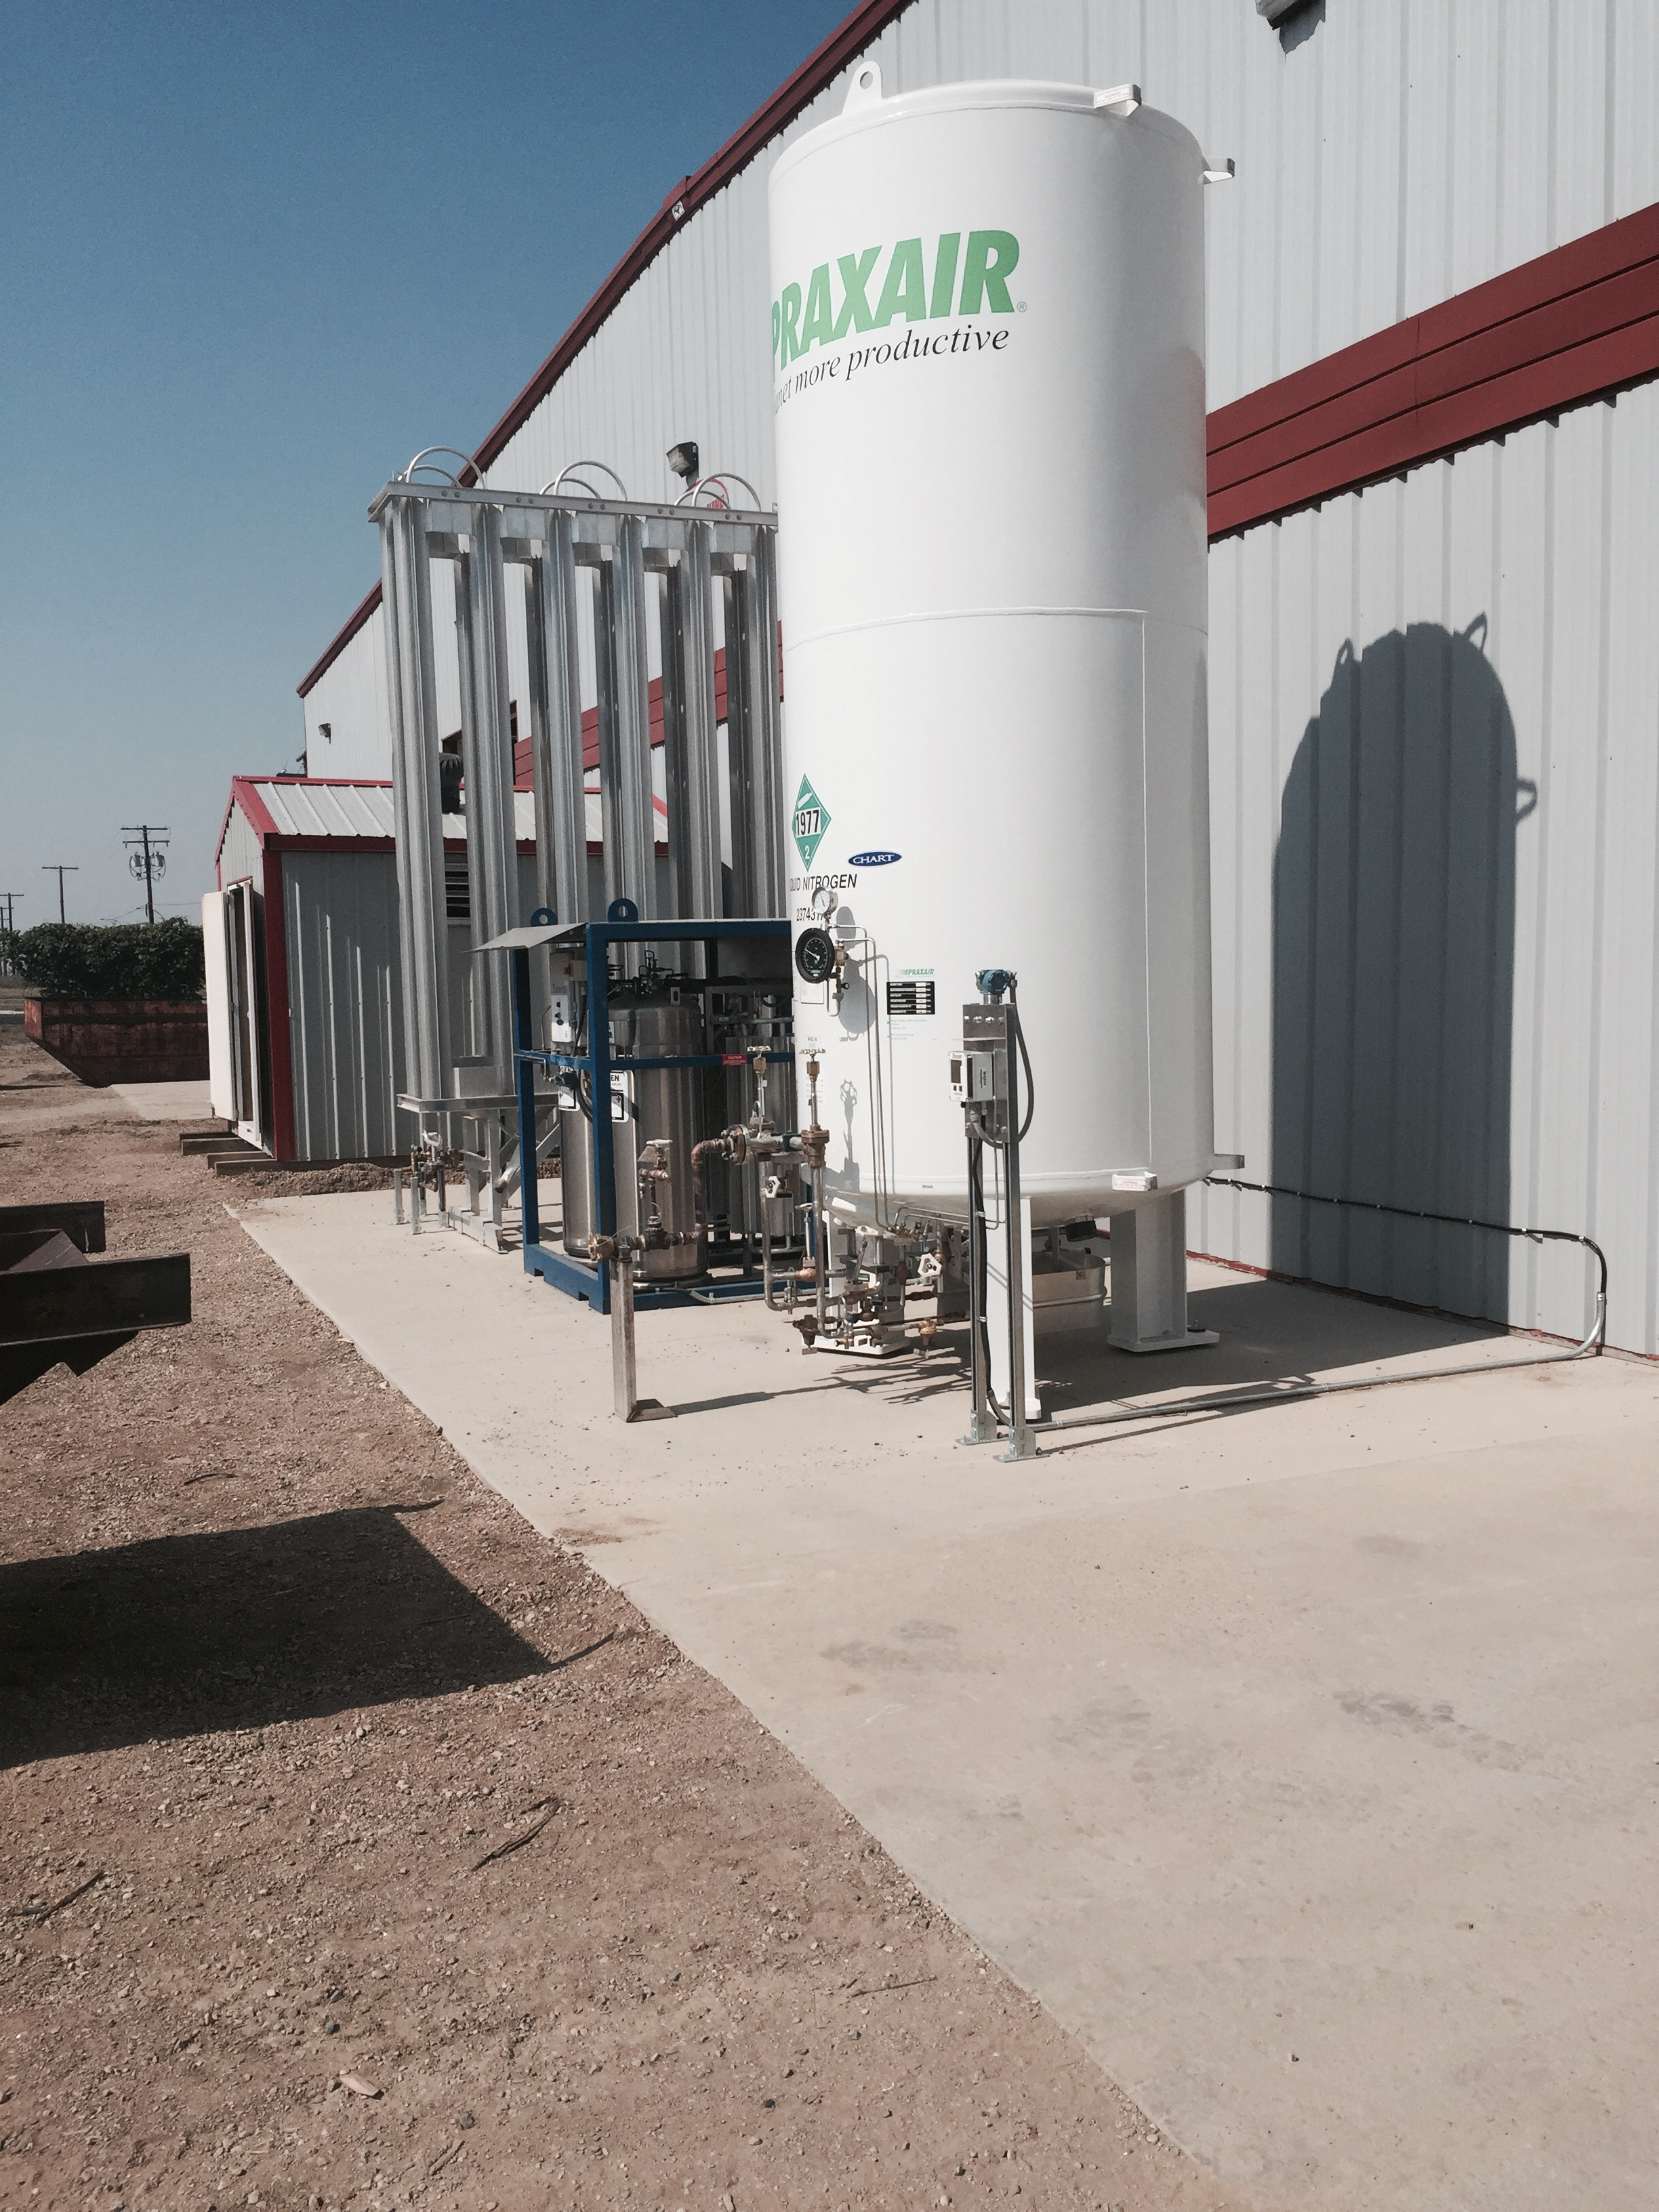 Here is the Bulk Nitrogen storage situated on the concrete pad that we highlighted in a previous post.  The Nitrogen is stored as a liquid and runs through the large aluminum structure to the left of the tank to change it from liquid to gas.